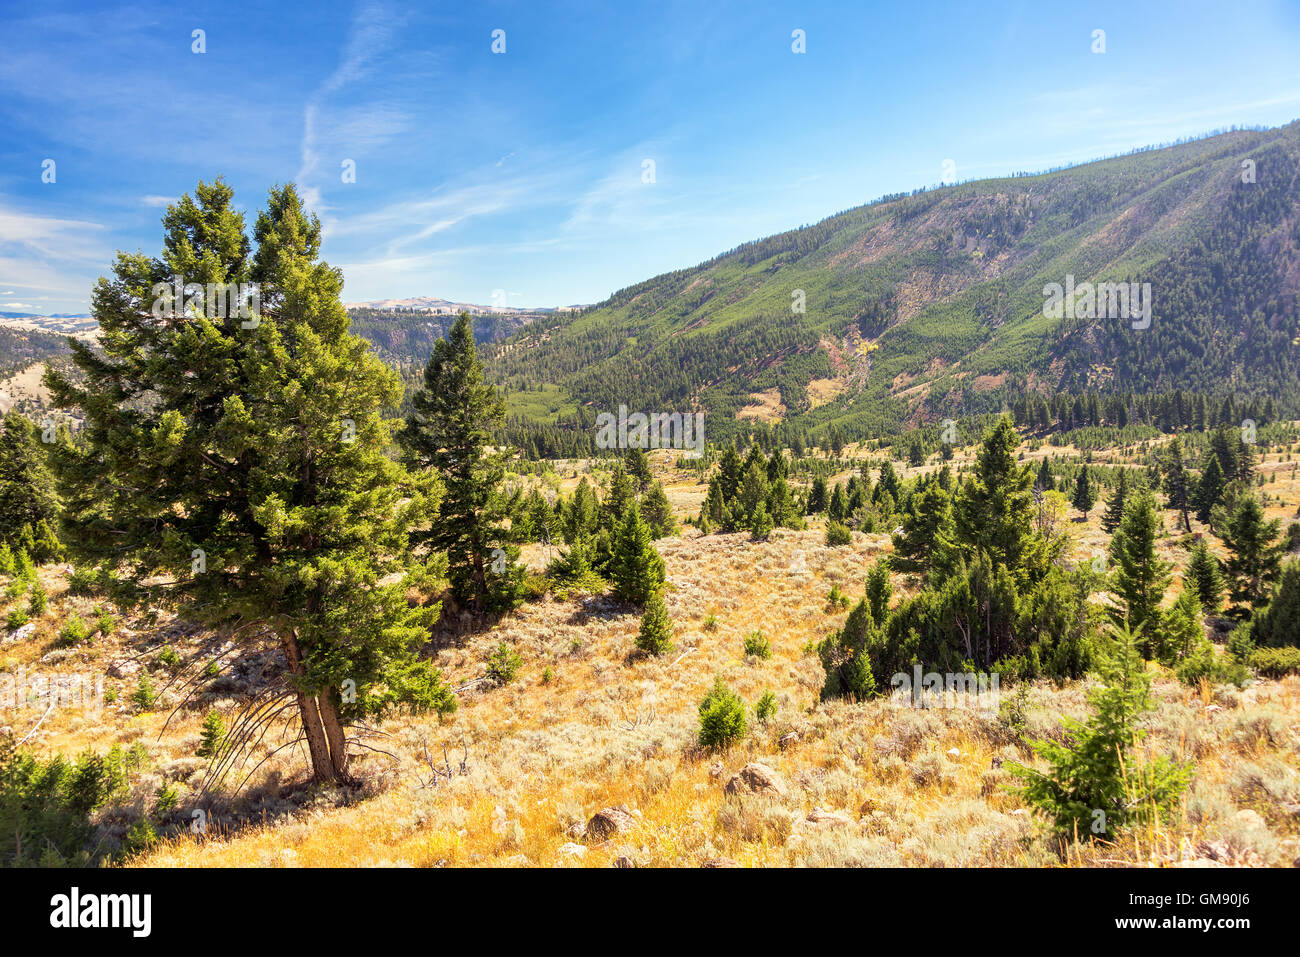 Landscape of hills and forests in Yellowstone National Park - Stock Image